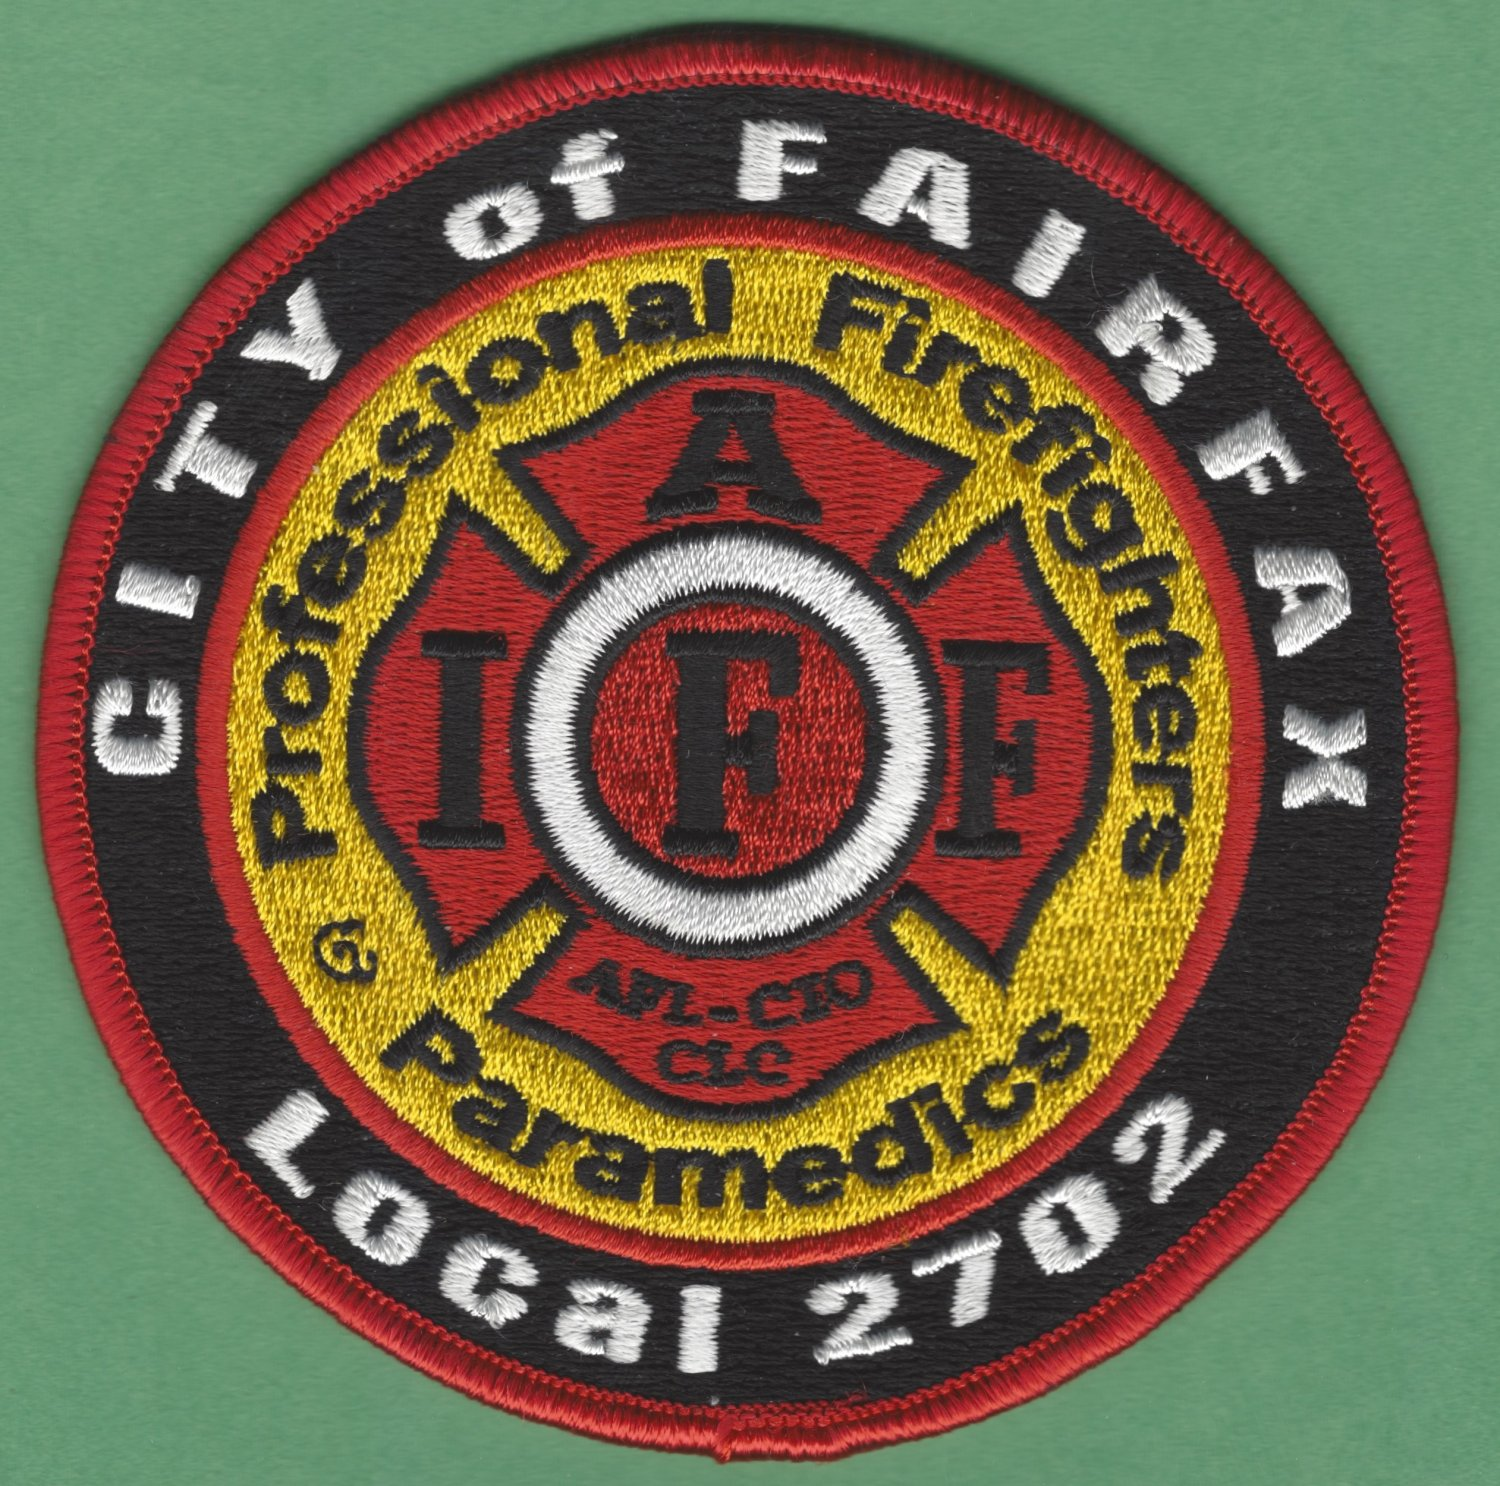 FAIRFAX VIRGINIA FIRE RESCUE PATCH